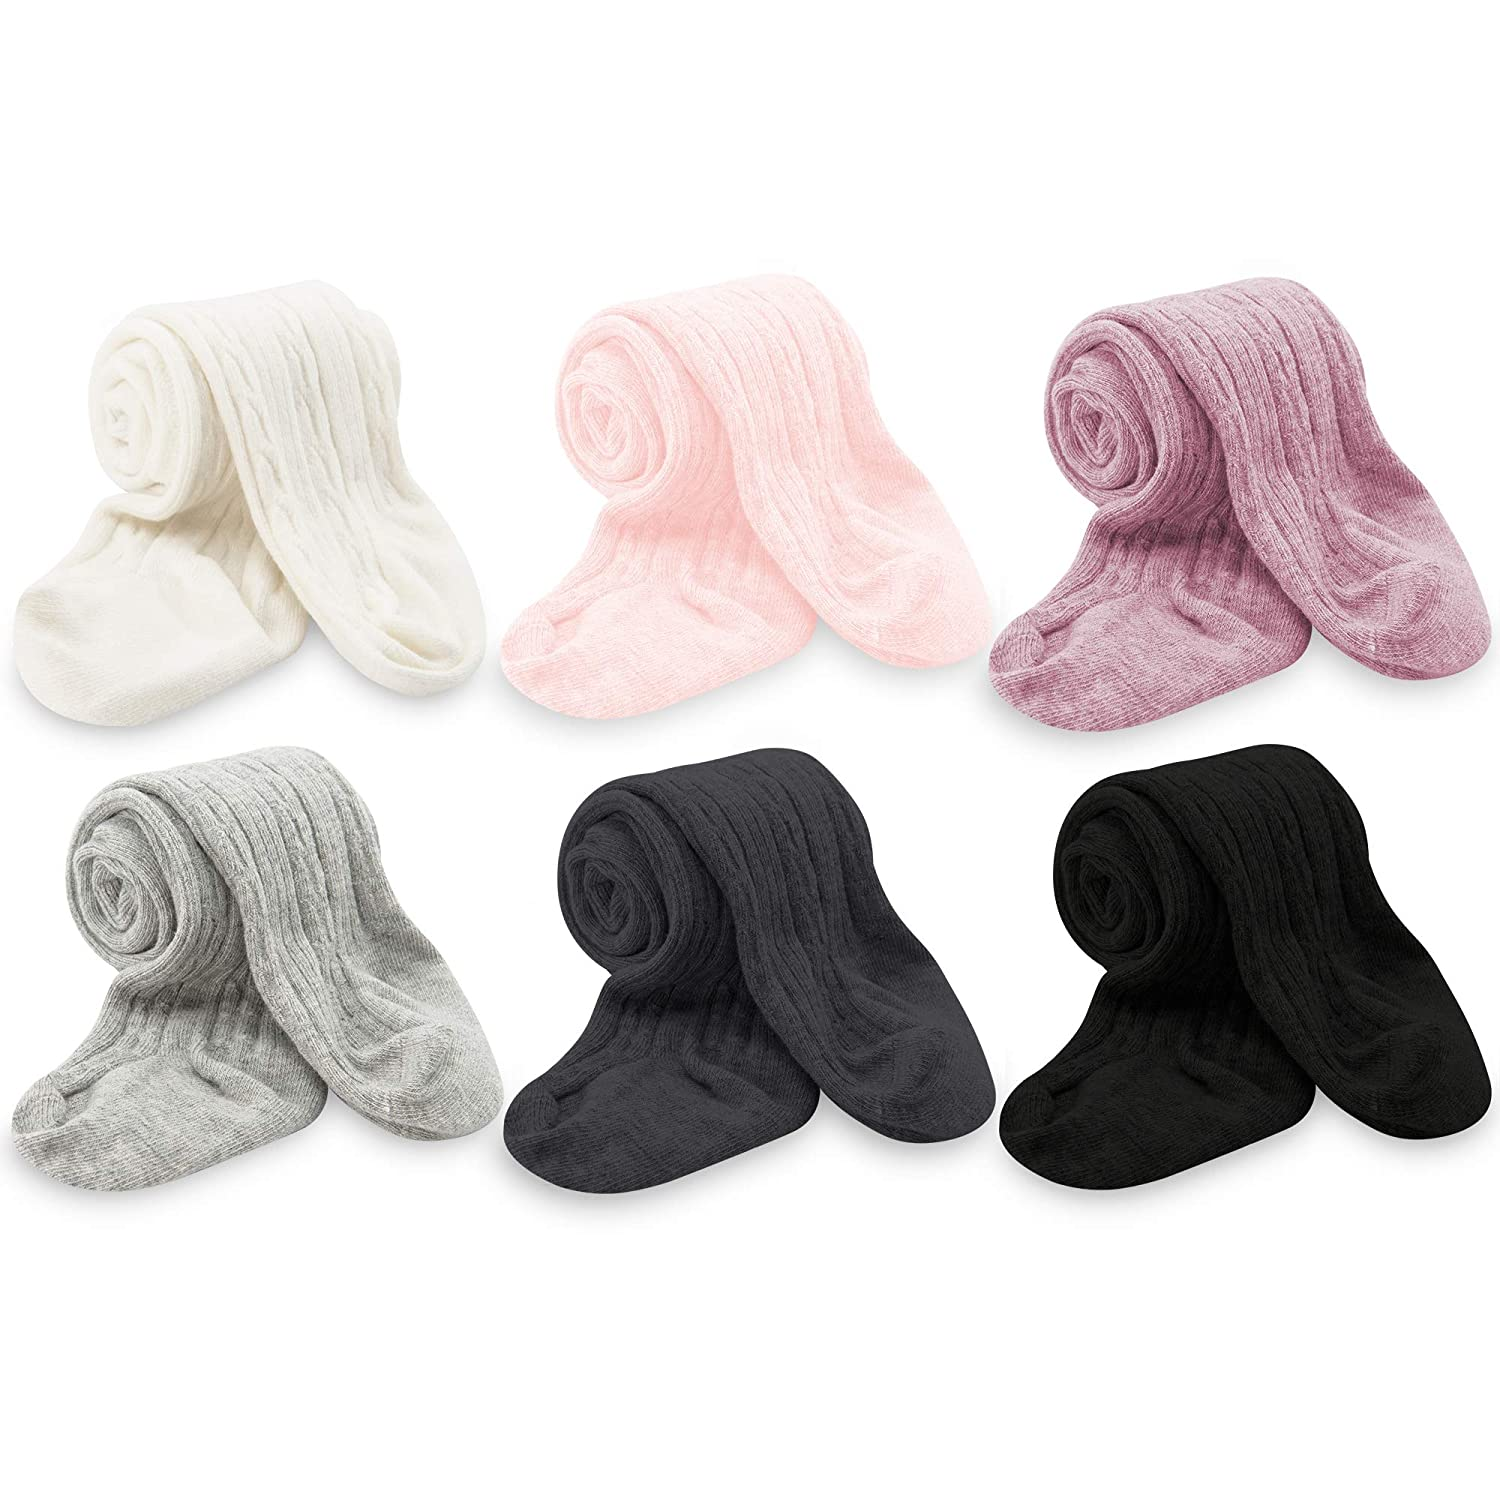 Zando Baby Girls Tights Soft Cable Knit Cotton Leggings For Baby Big Girls Toddler Seamless Socks Infant Pants Stockings MNFUZBS2727L0000